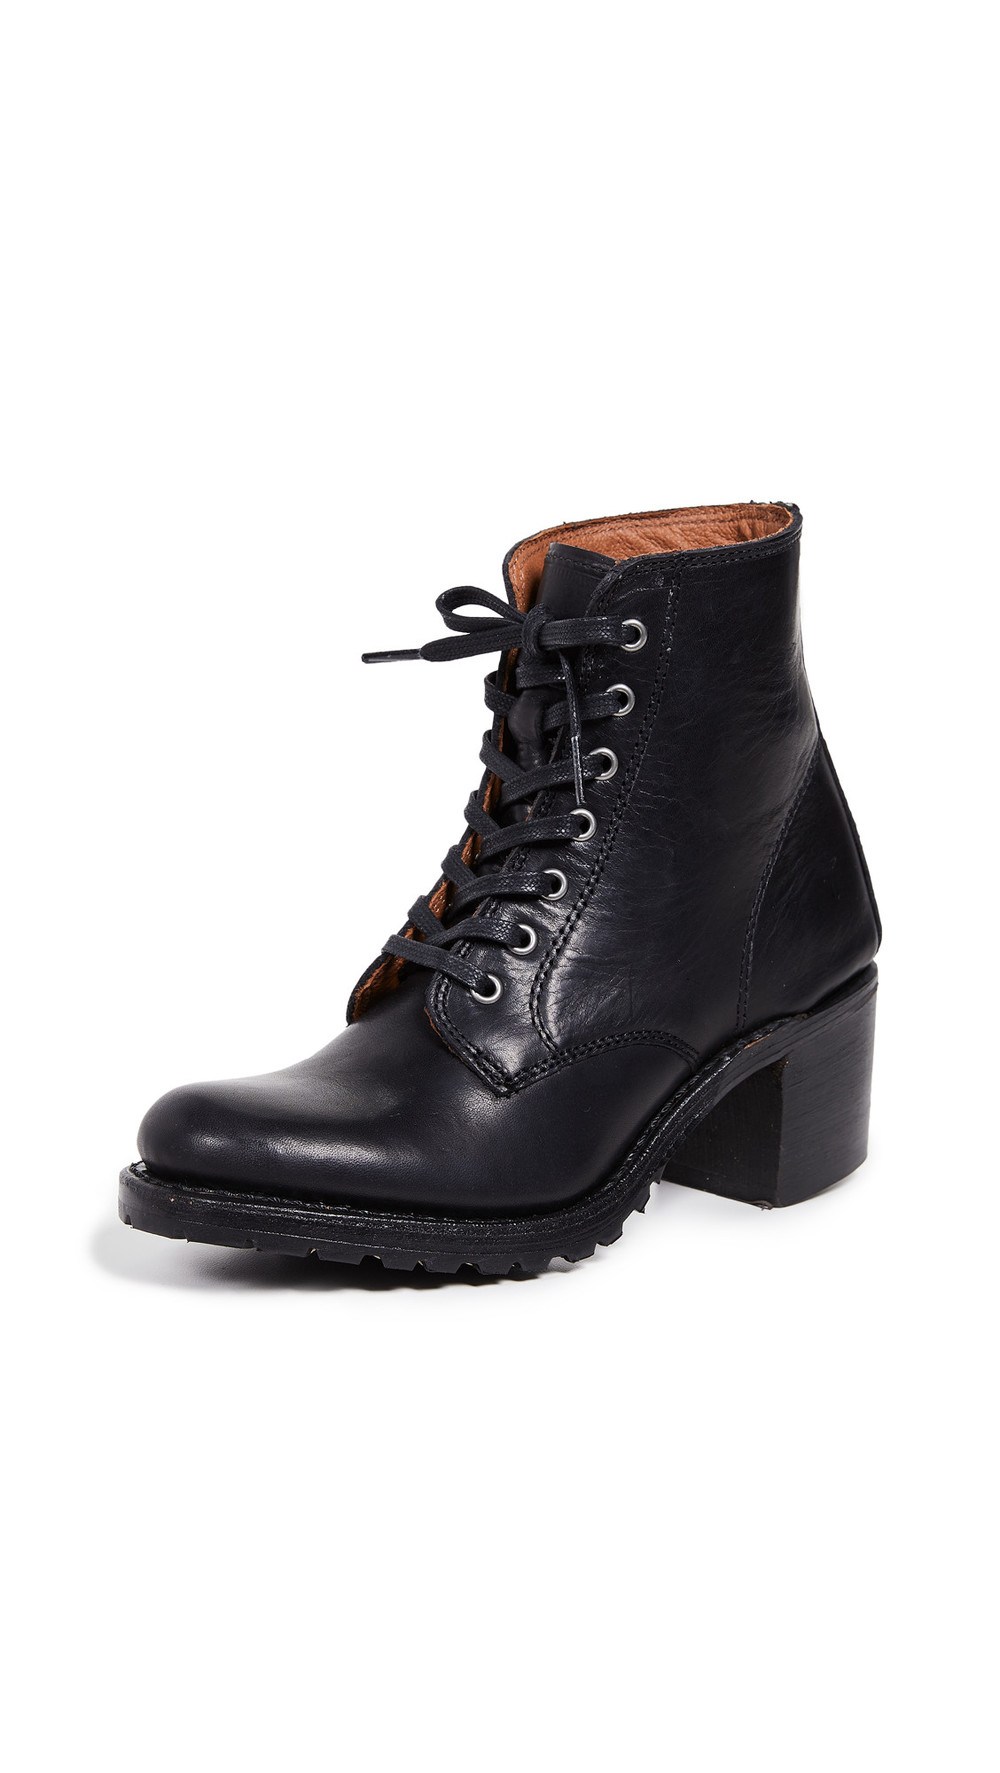 Frye Sabrina 6G Lace Up Boots in black